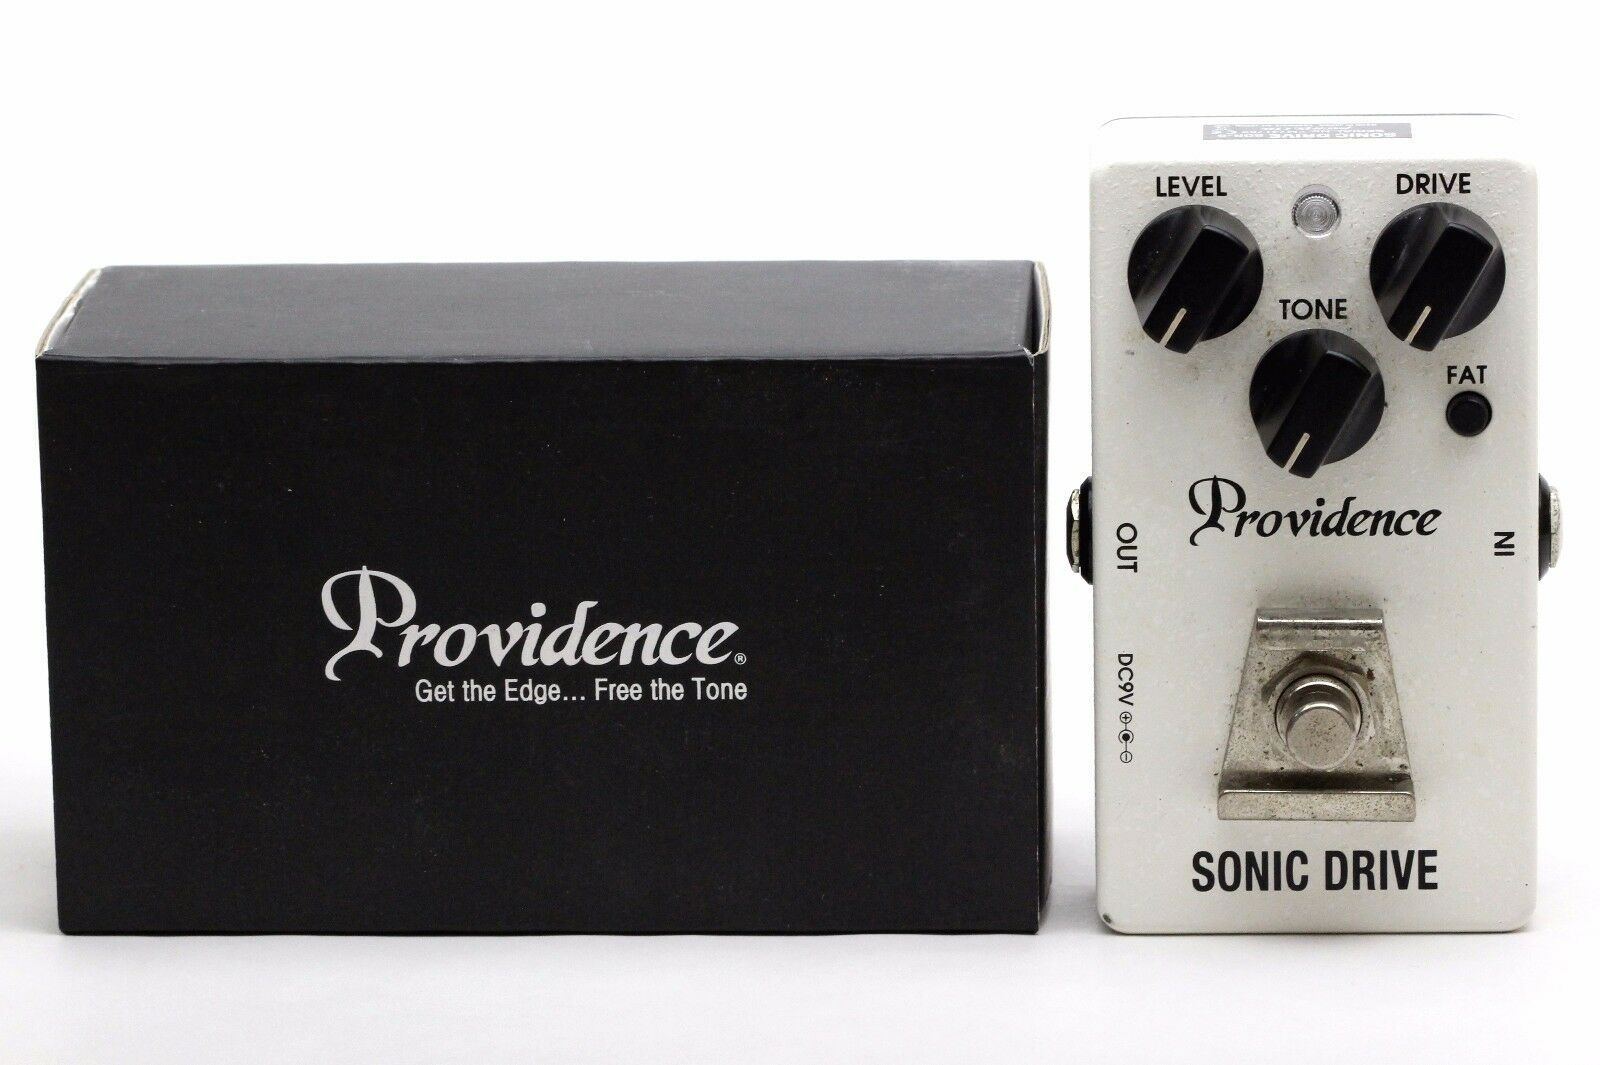 Adapter Recommended - Providence SDR-5 SNIC DRIVE Effect Pedal Made in Japan